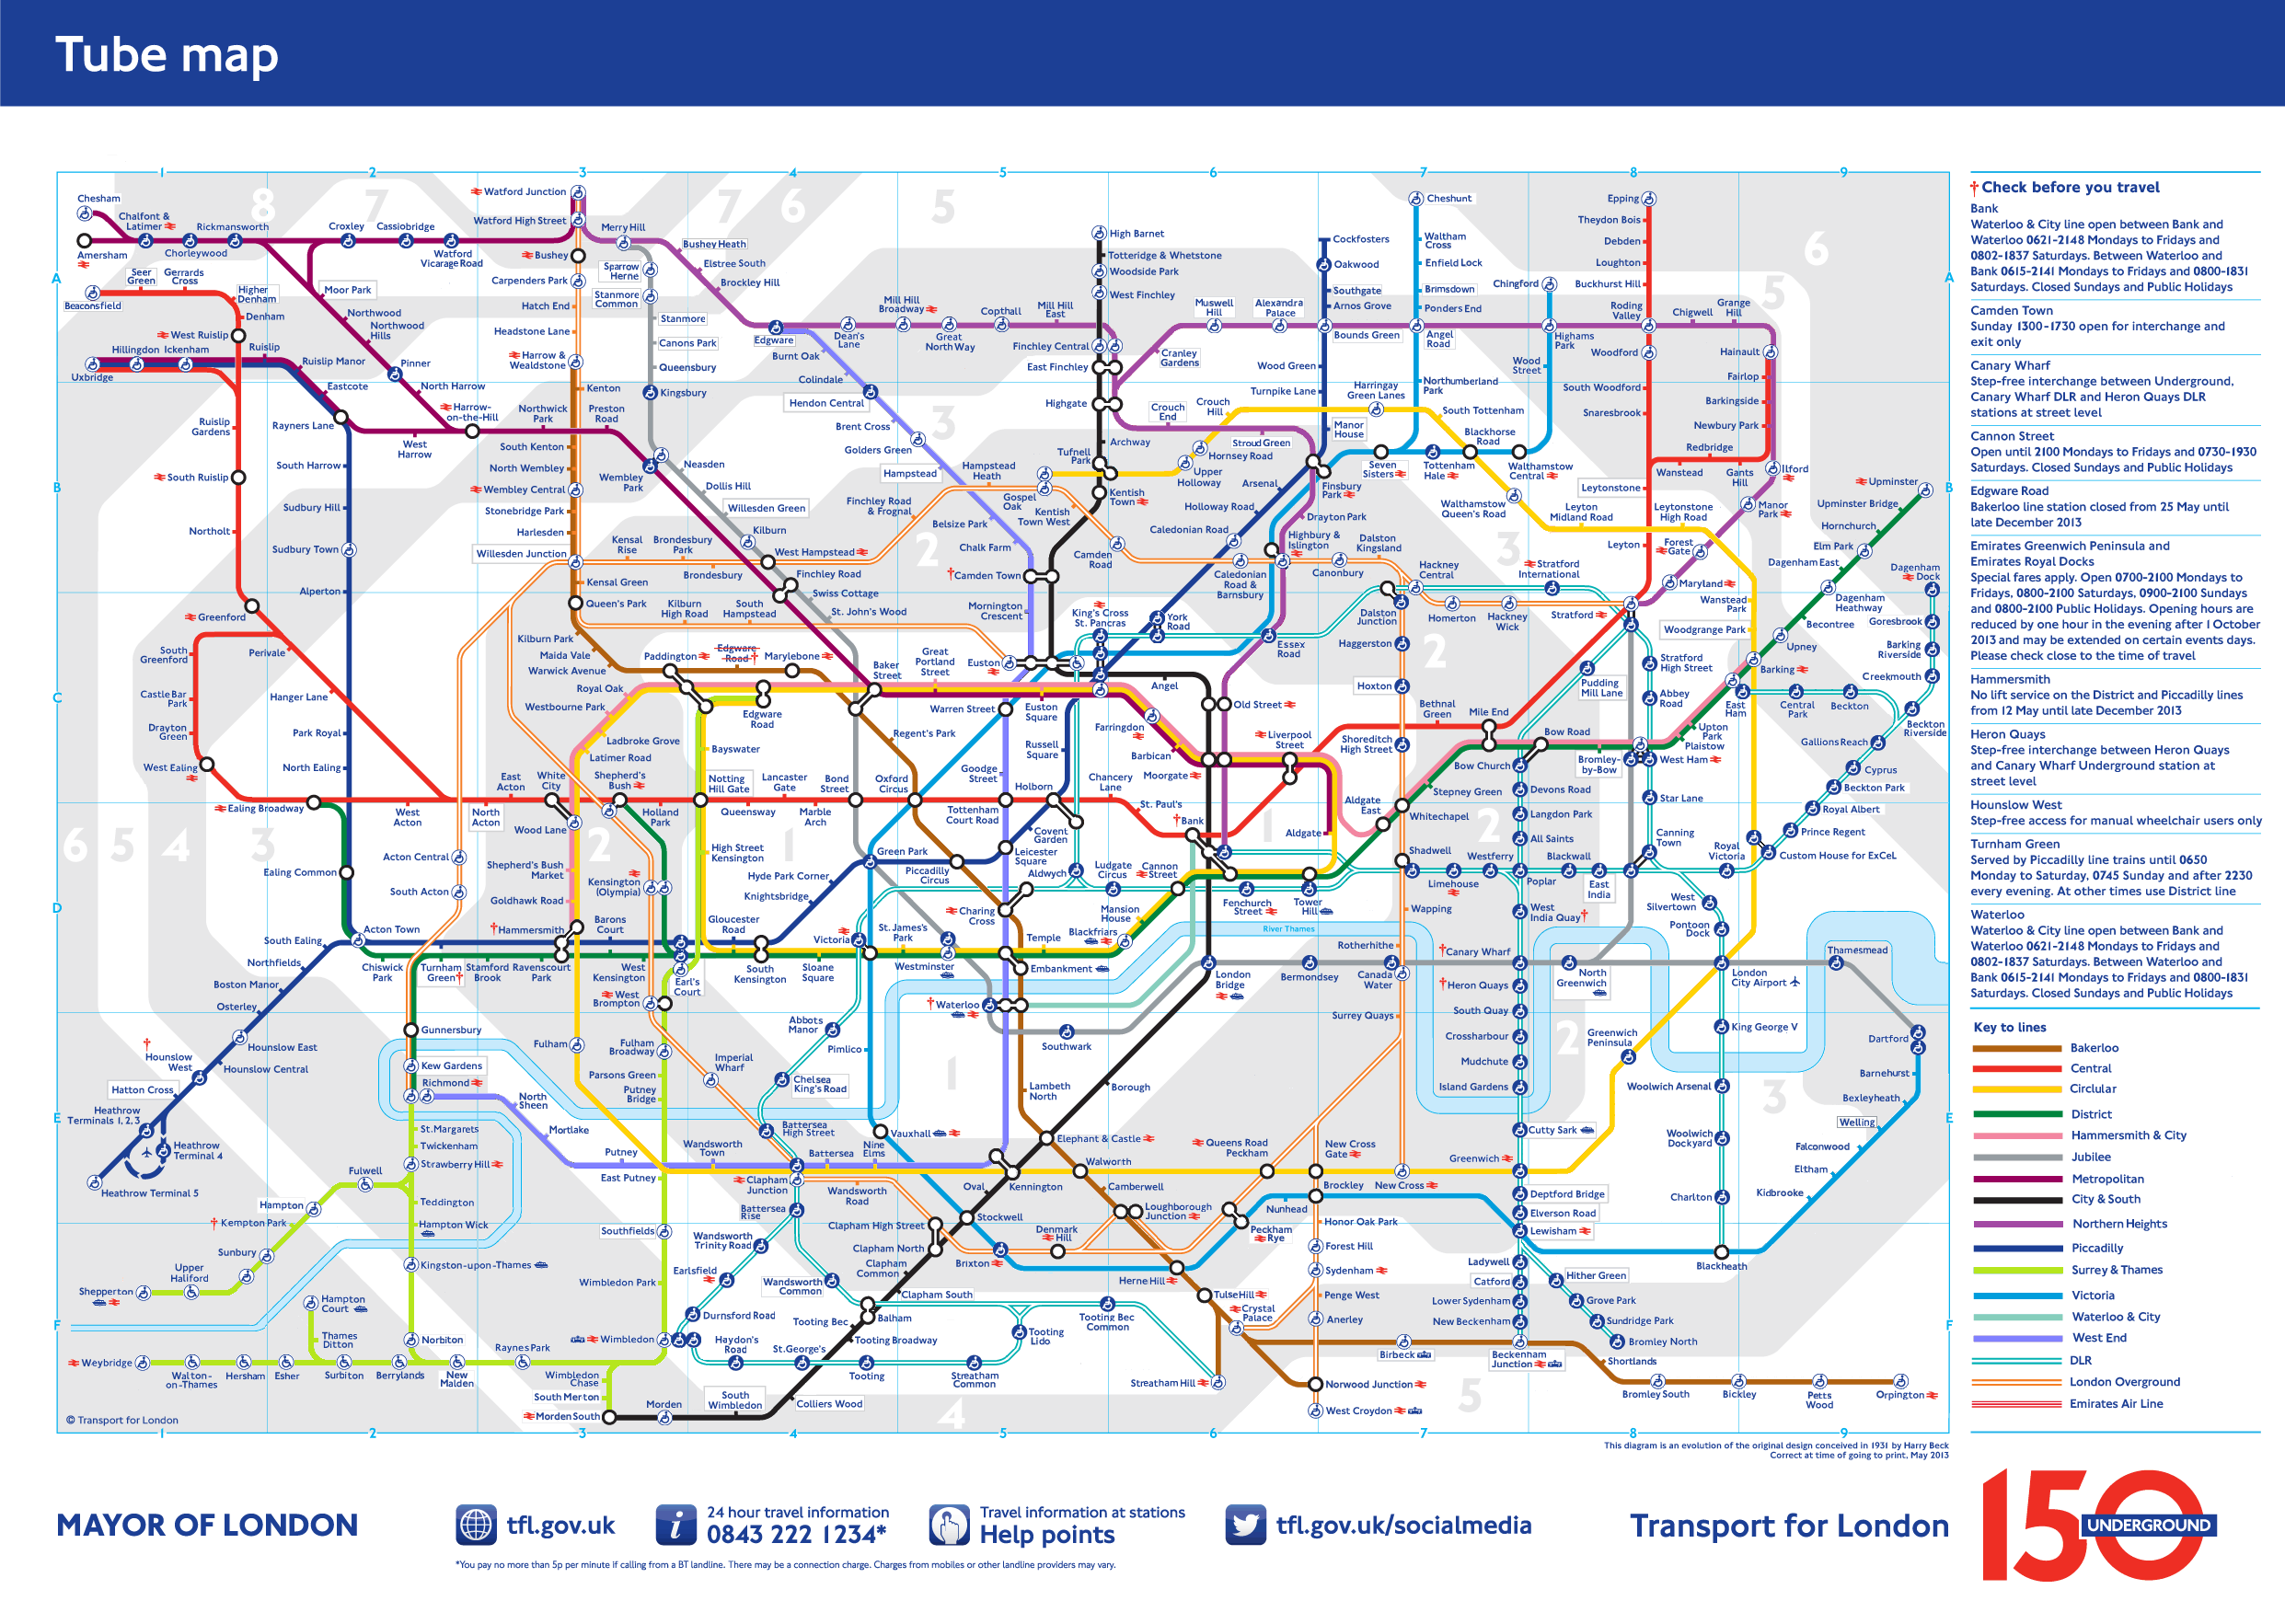 London Underground Map 2025 - Better extensions, connections and ...